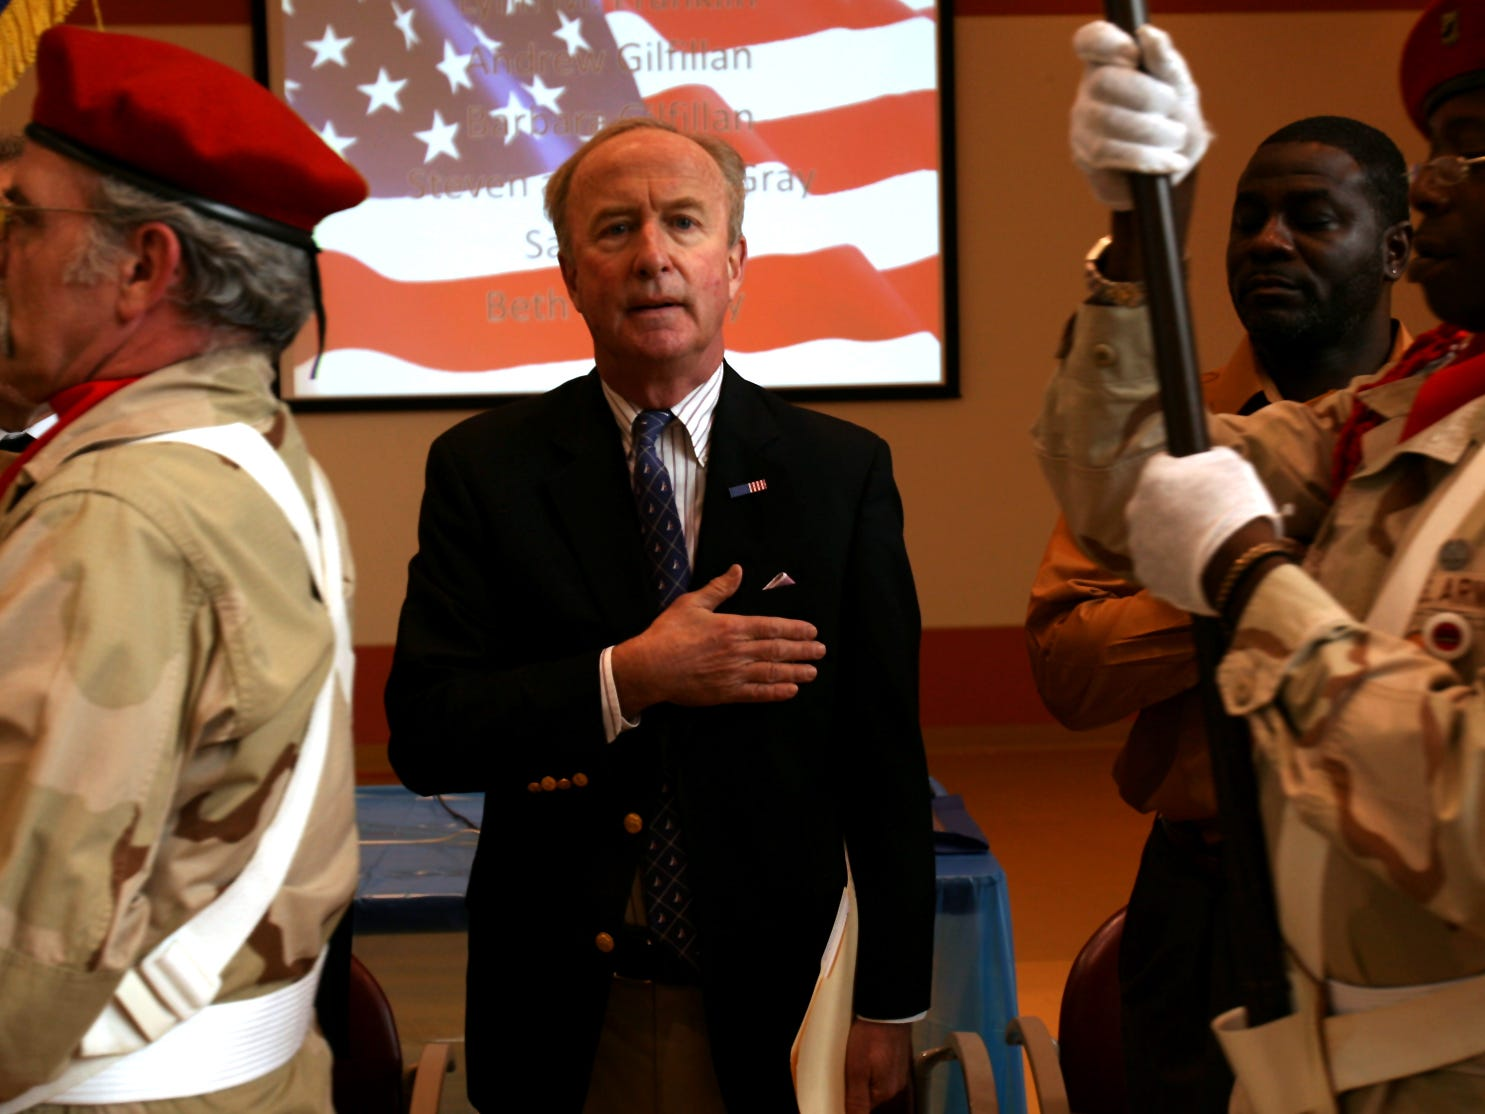 Bernards Twp, April 9, 2010--Congressman Rodney Frelinghuysen covers his heart during the presentation of colors as he officiated at the fifth anniversary of the Hope for Veterans project at the Lyons Veterans Affairs campus.